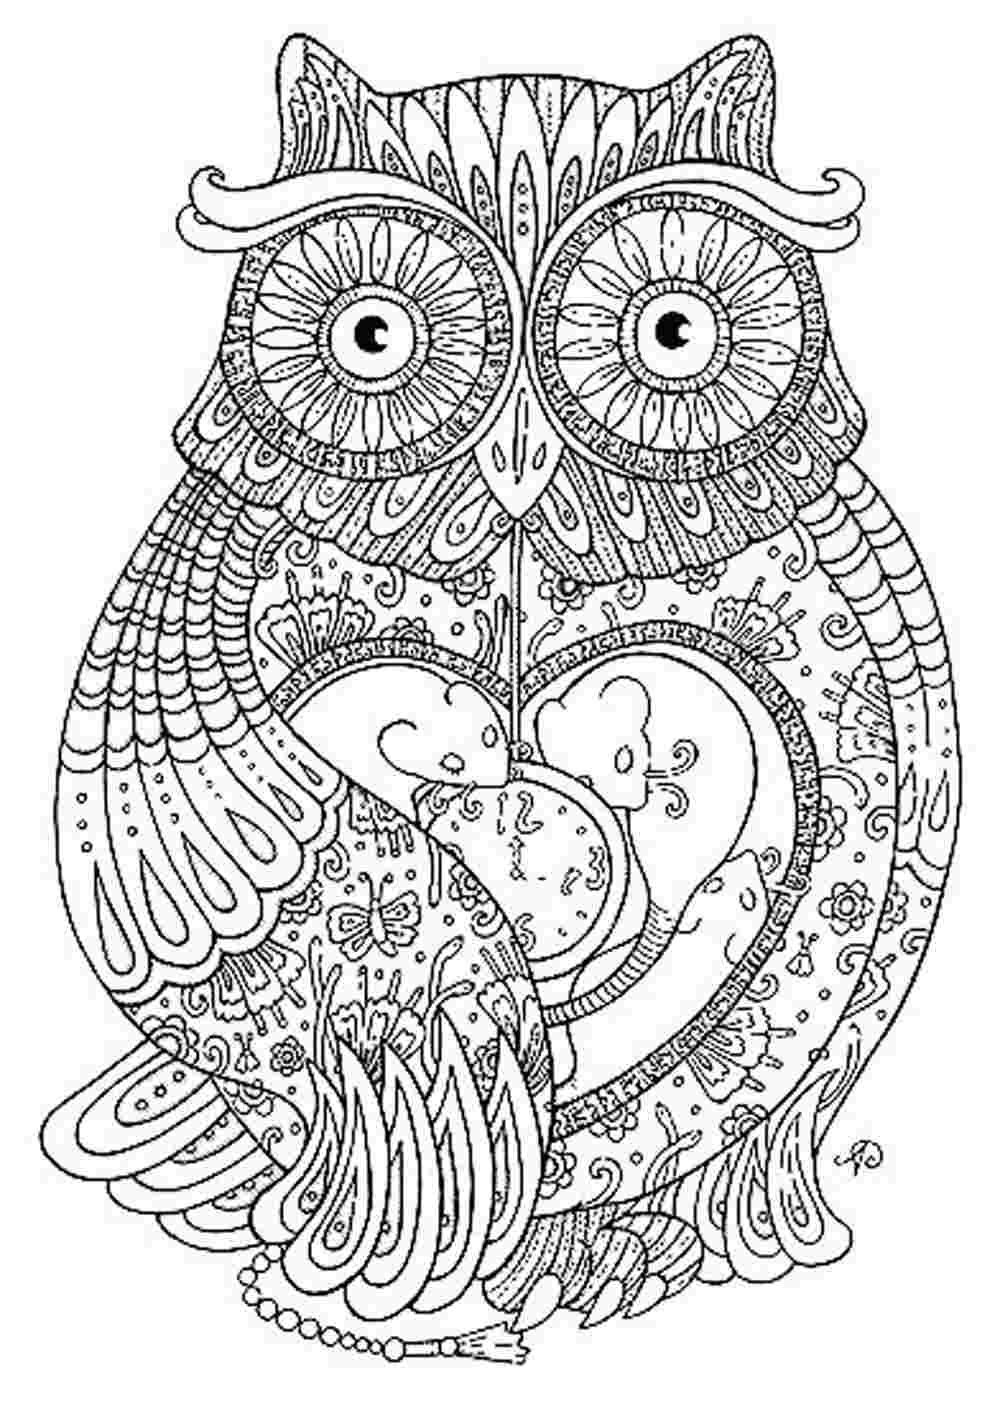 aduly coloring pages - photo#2